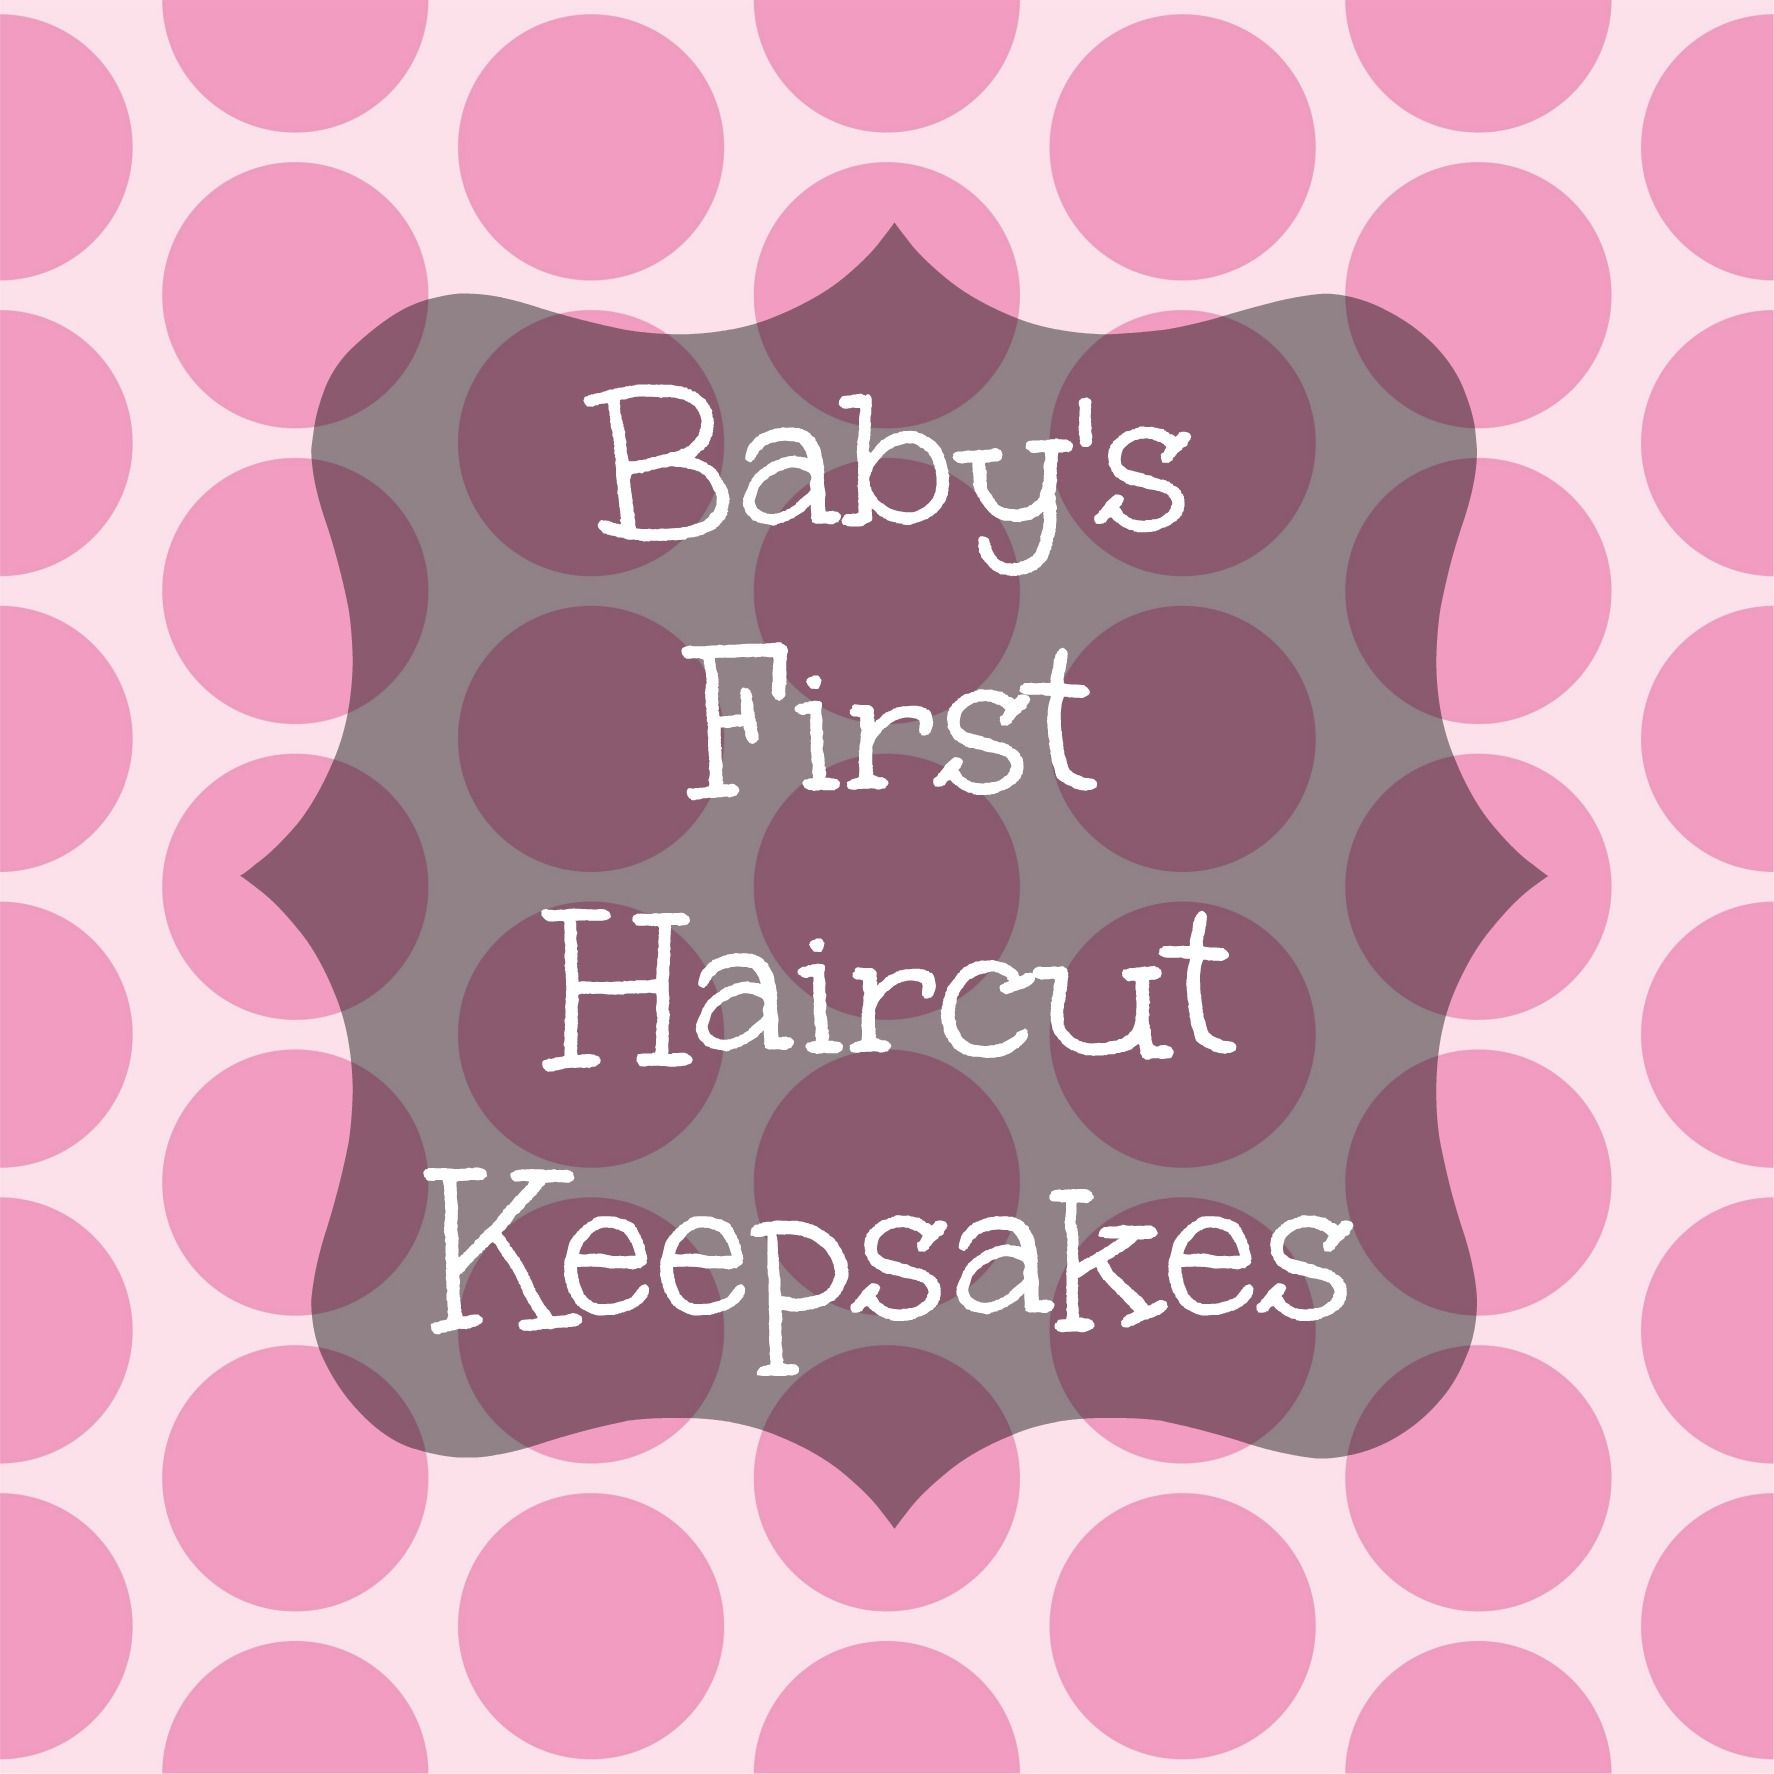 baby s haircut keepsake baby s haircut keepsakes baby s haircut 1019